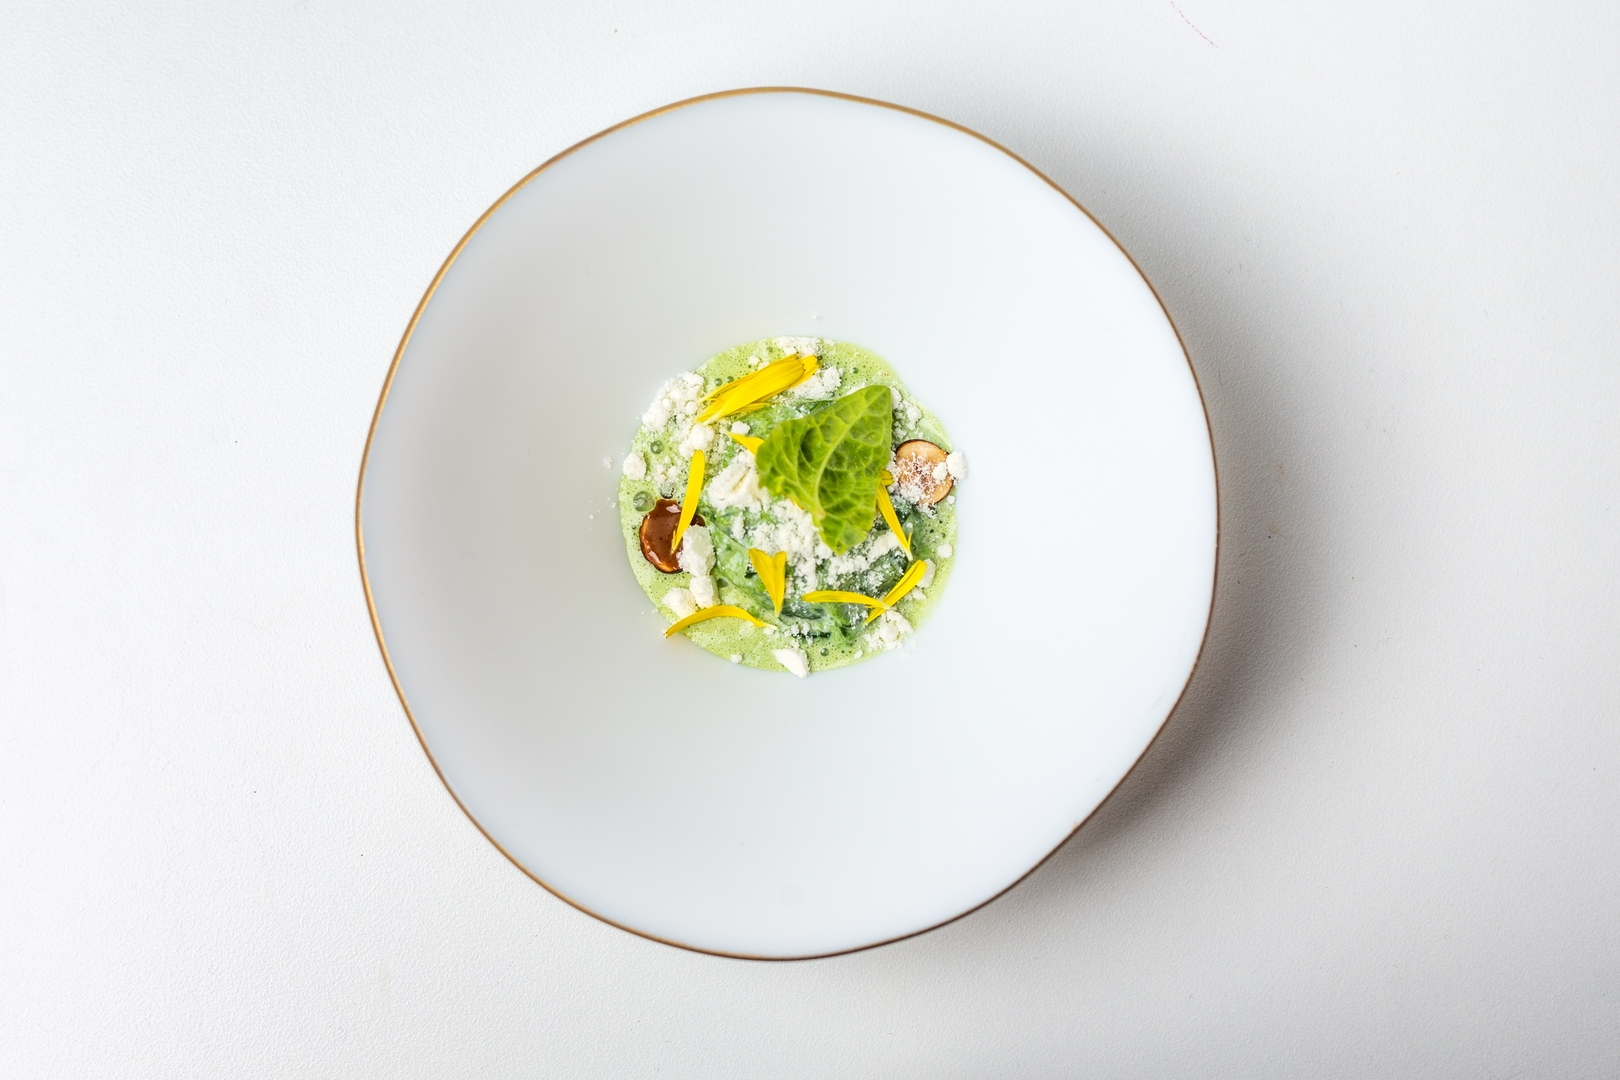 Creamed spinach and trout roe